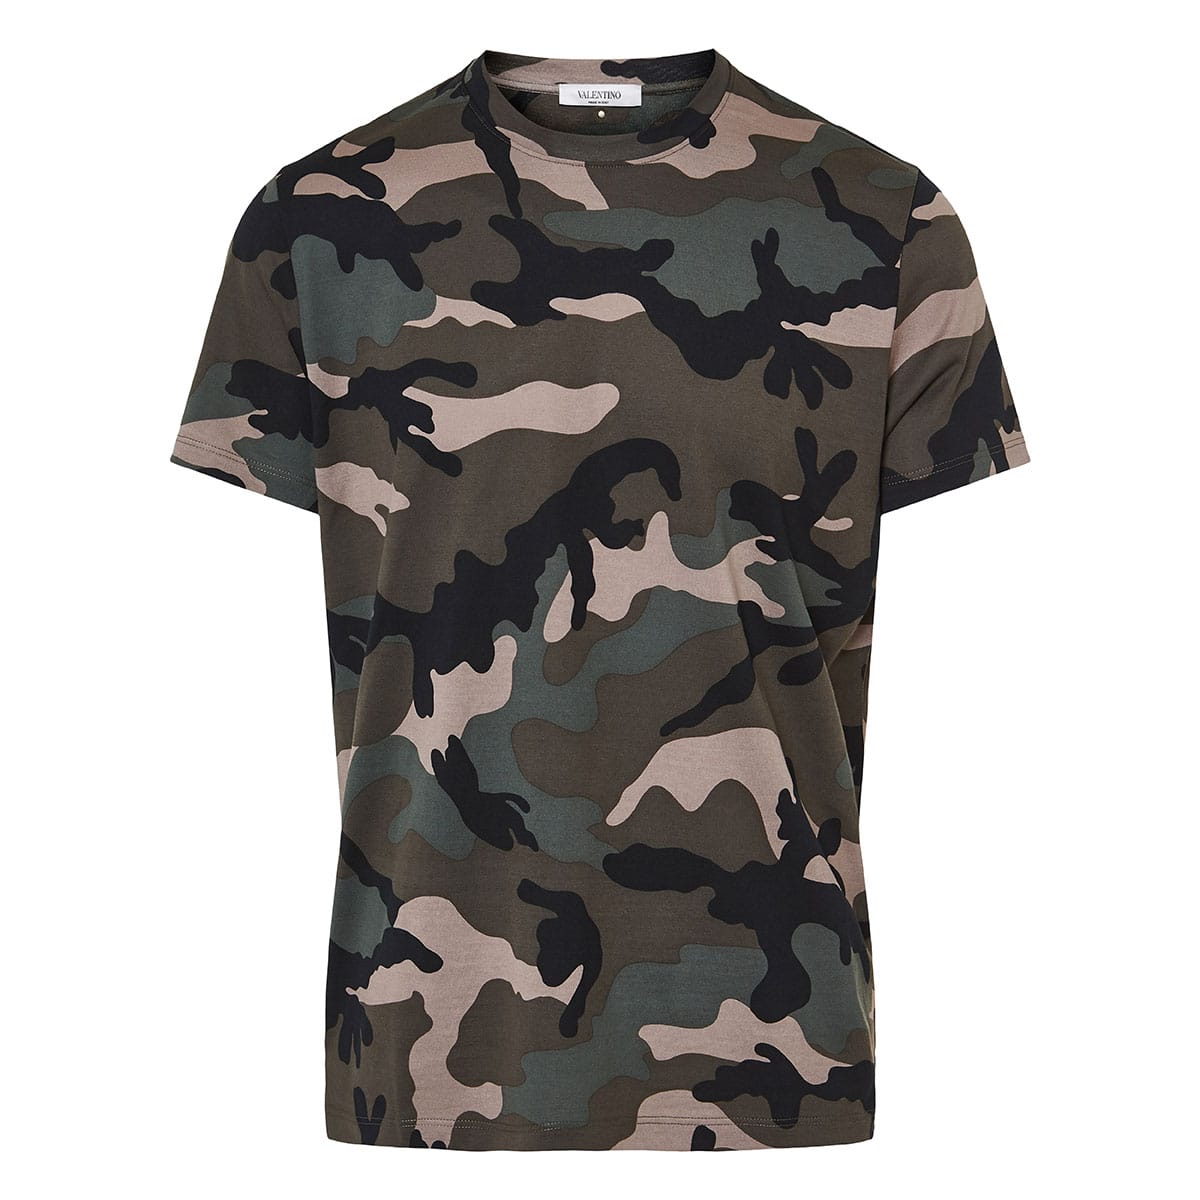 Camouflage printed t-shirt